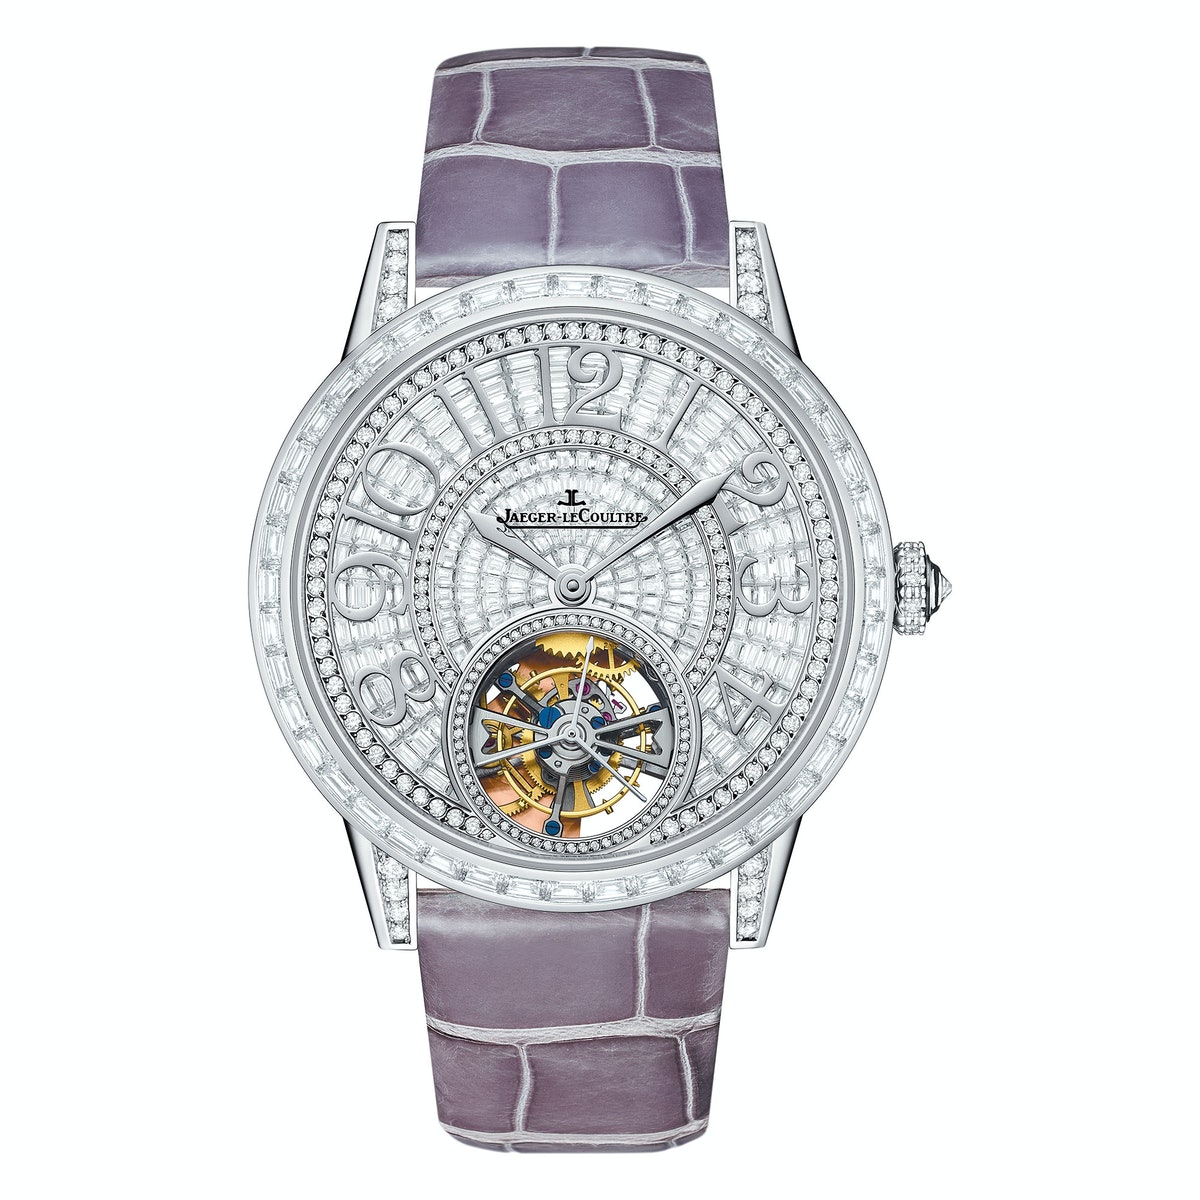 Jaeger-LeCoultre white gold and diamond watch